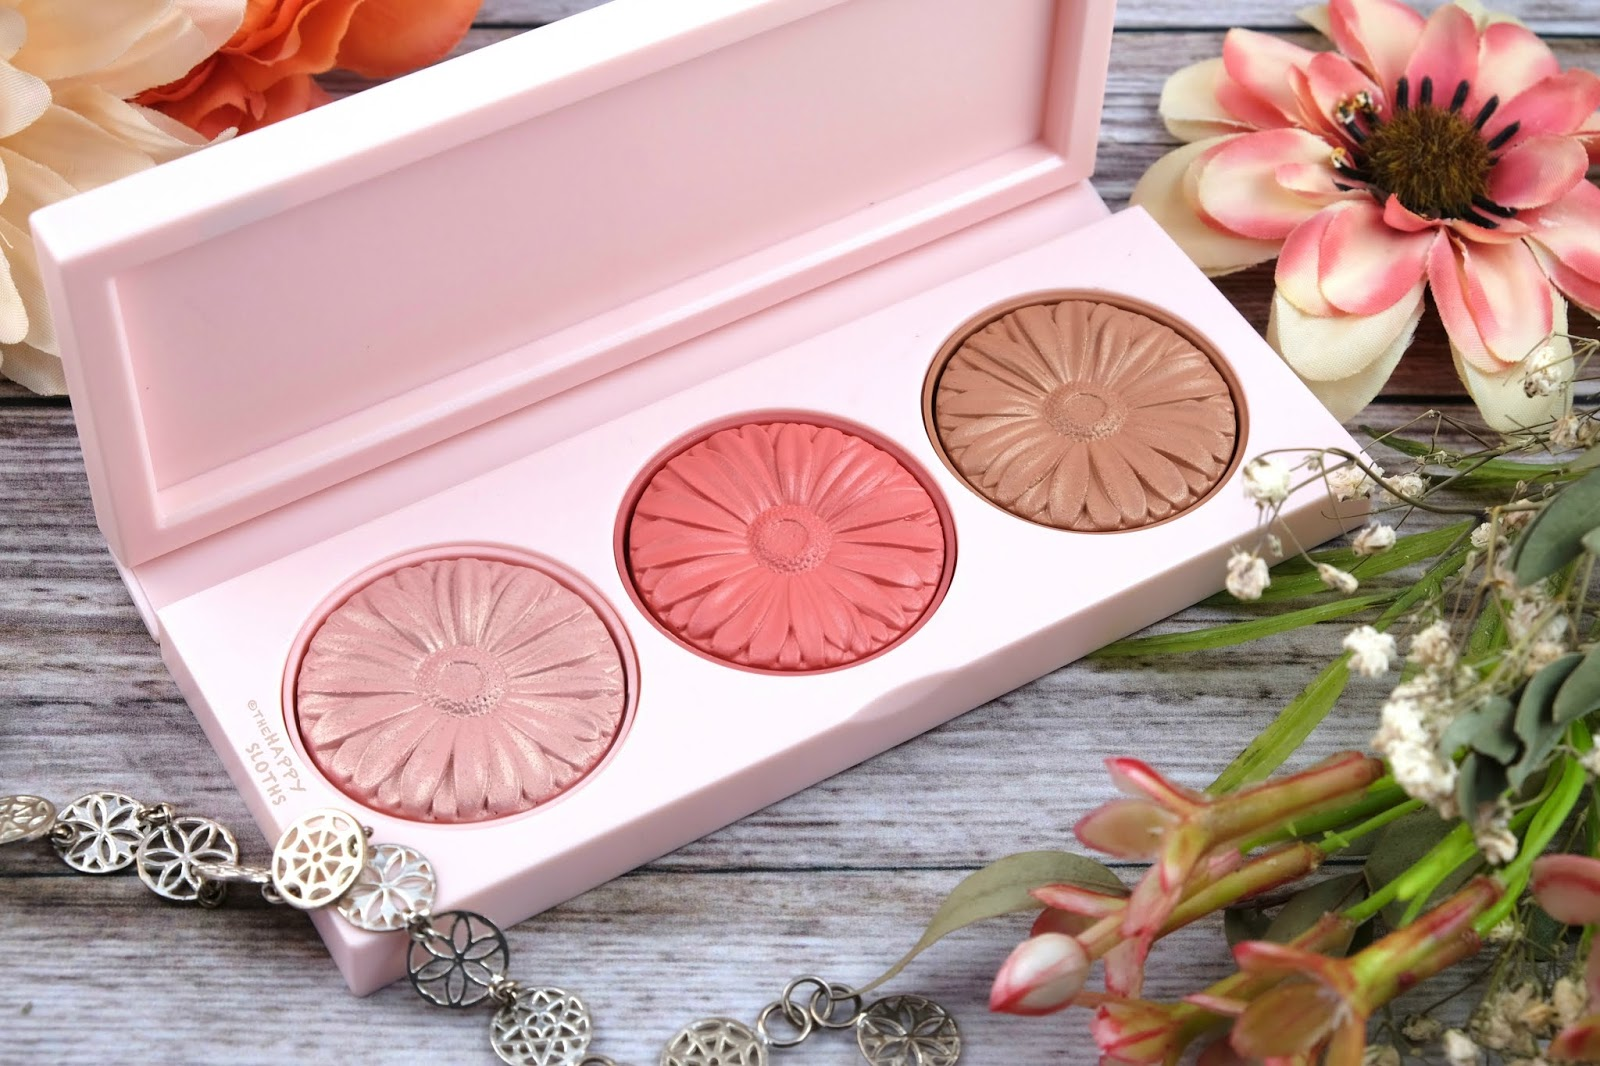 Clinique | Cheek Pop On-The-Glow Trio Palette: Review and Swatches